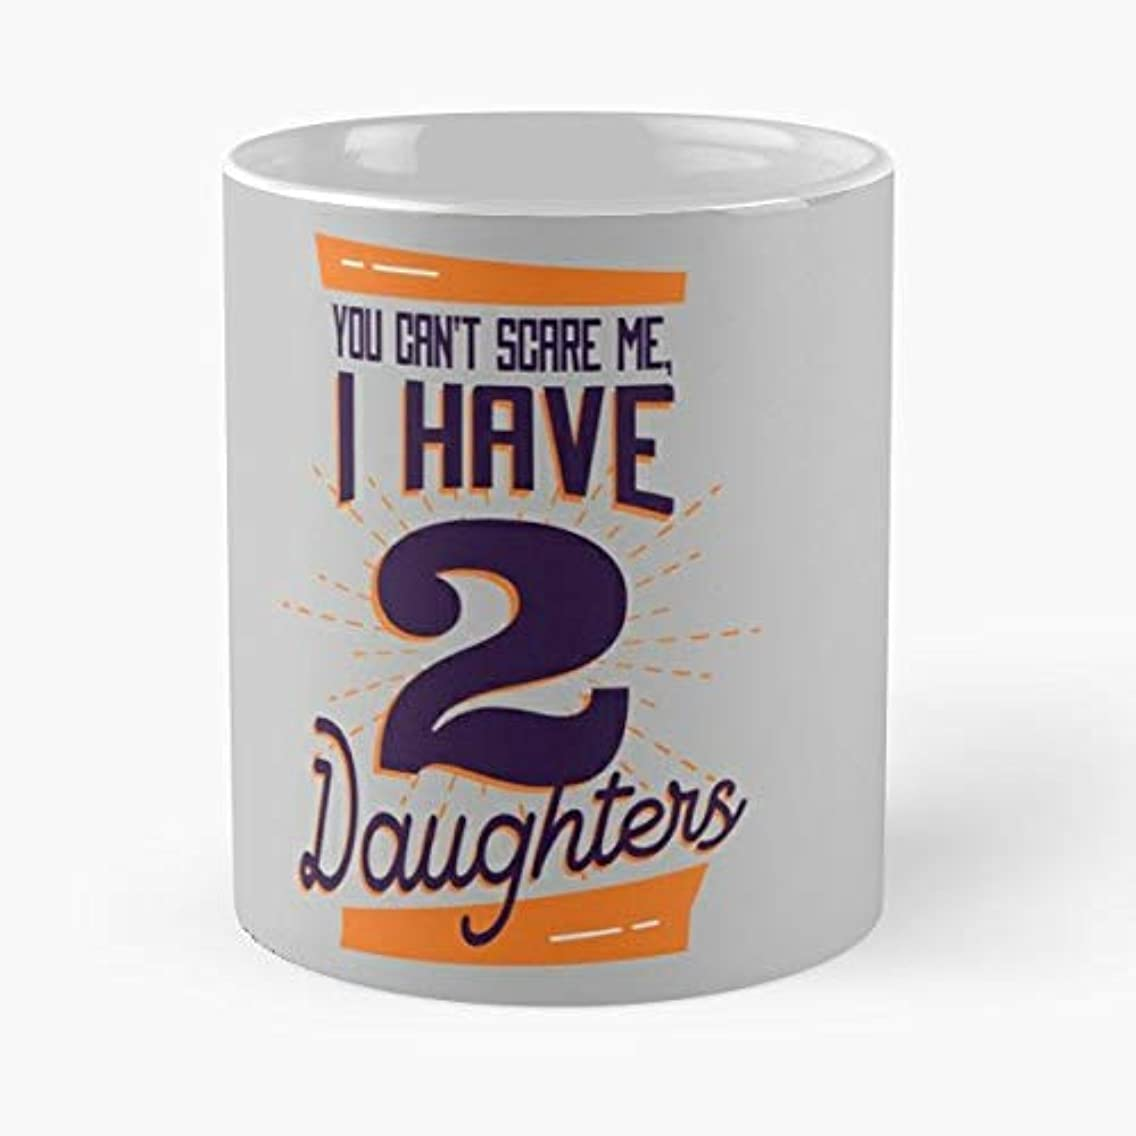 You Can T Scare Me - Coffee Mug-11 Oz,white Unique Birthday Gift-the Best Gift For Holidays.